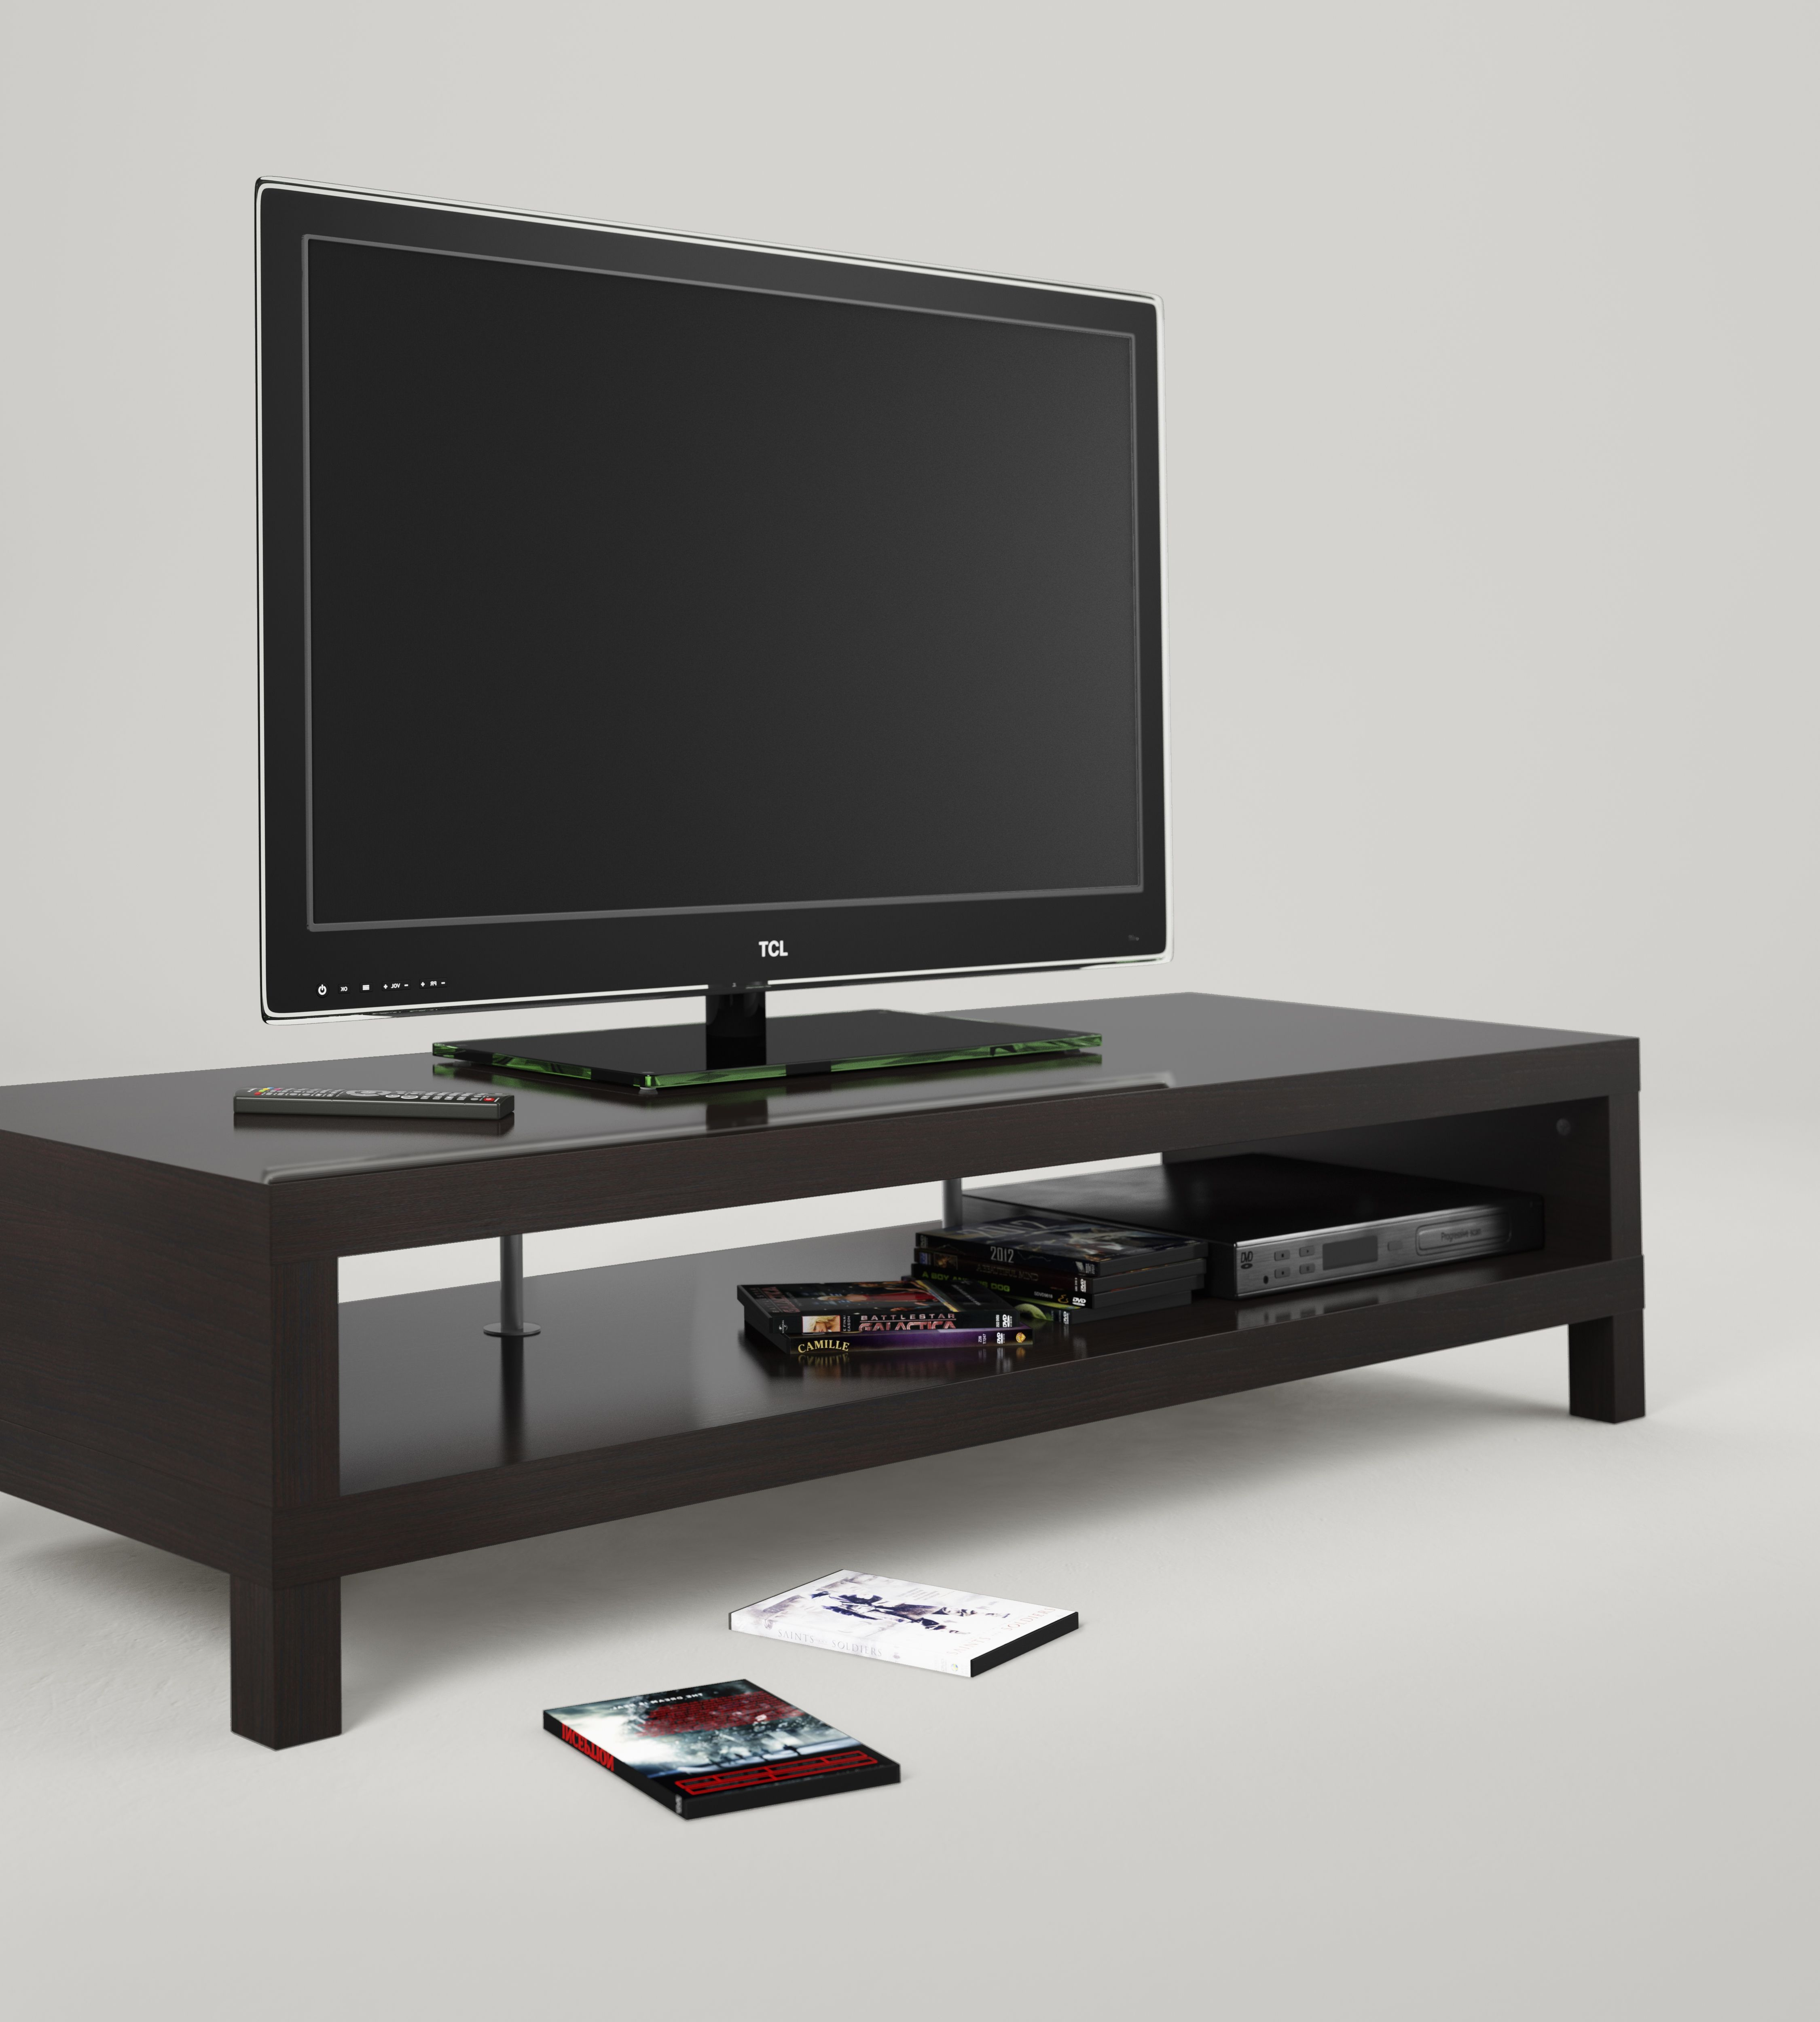 Groovy Lack Tv Bench Black Brown Ikea Tv Bench Ikea Ikea Home Ocoug Best Dining Table And Chair Ideas Images Ocougorg